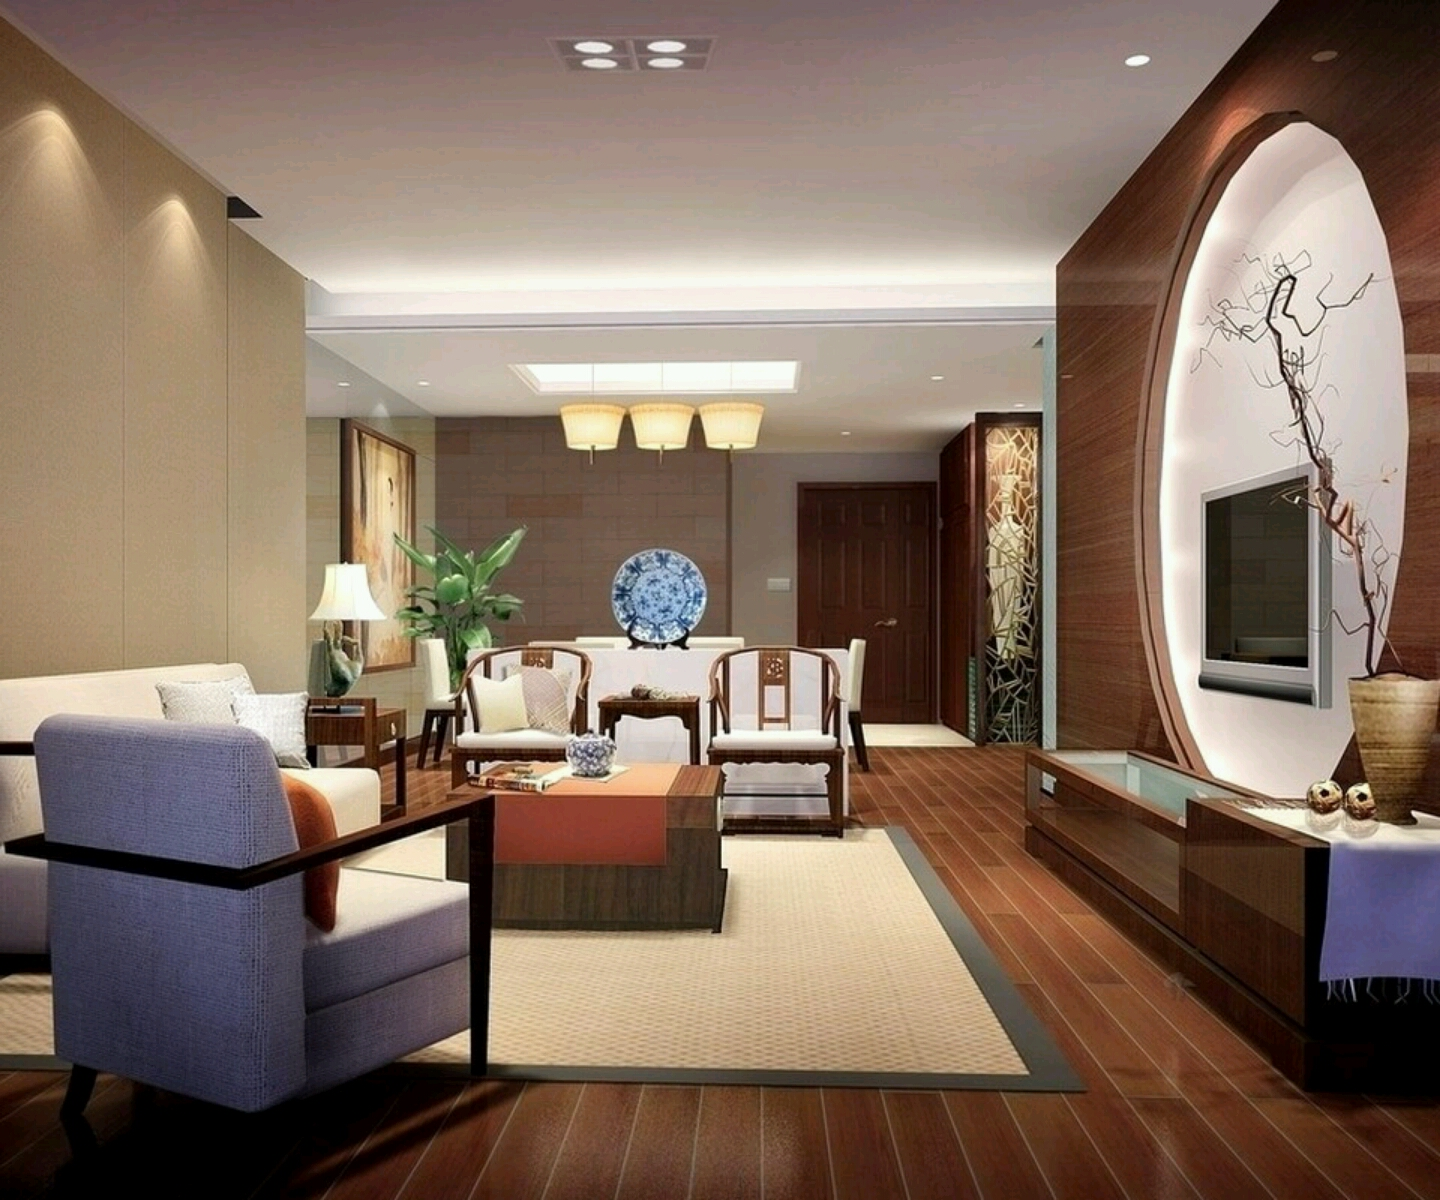 Luxury homes interior decoration living room designs ideas for New design interior living room